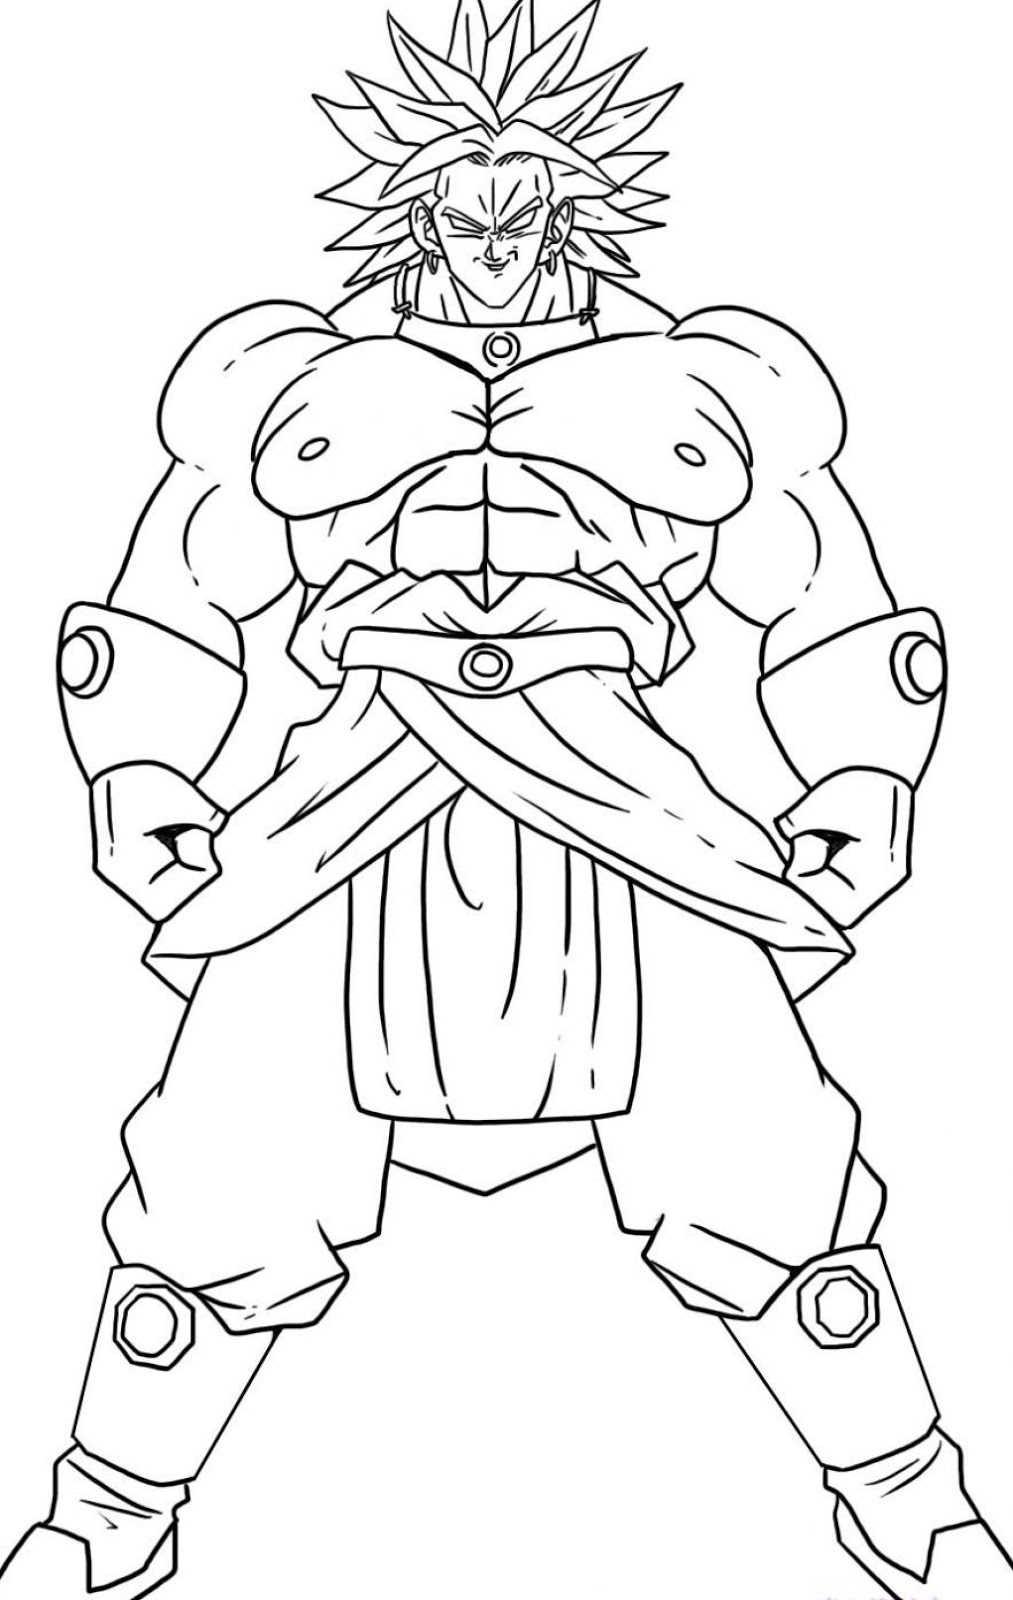 dragon ball coloring games is games online dragon ball z coloring pages games dragon ball coloring